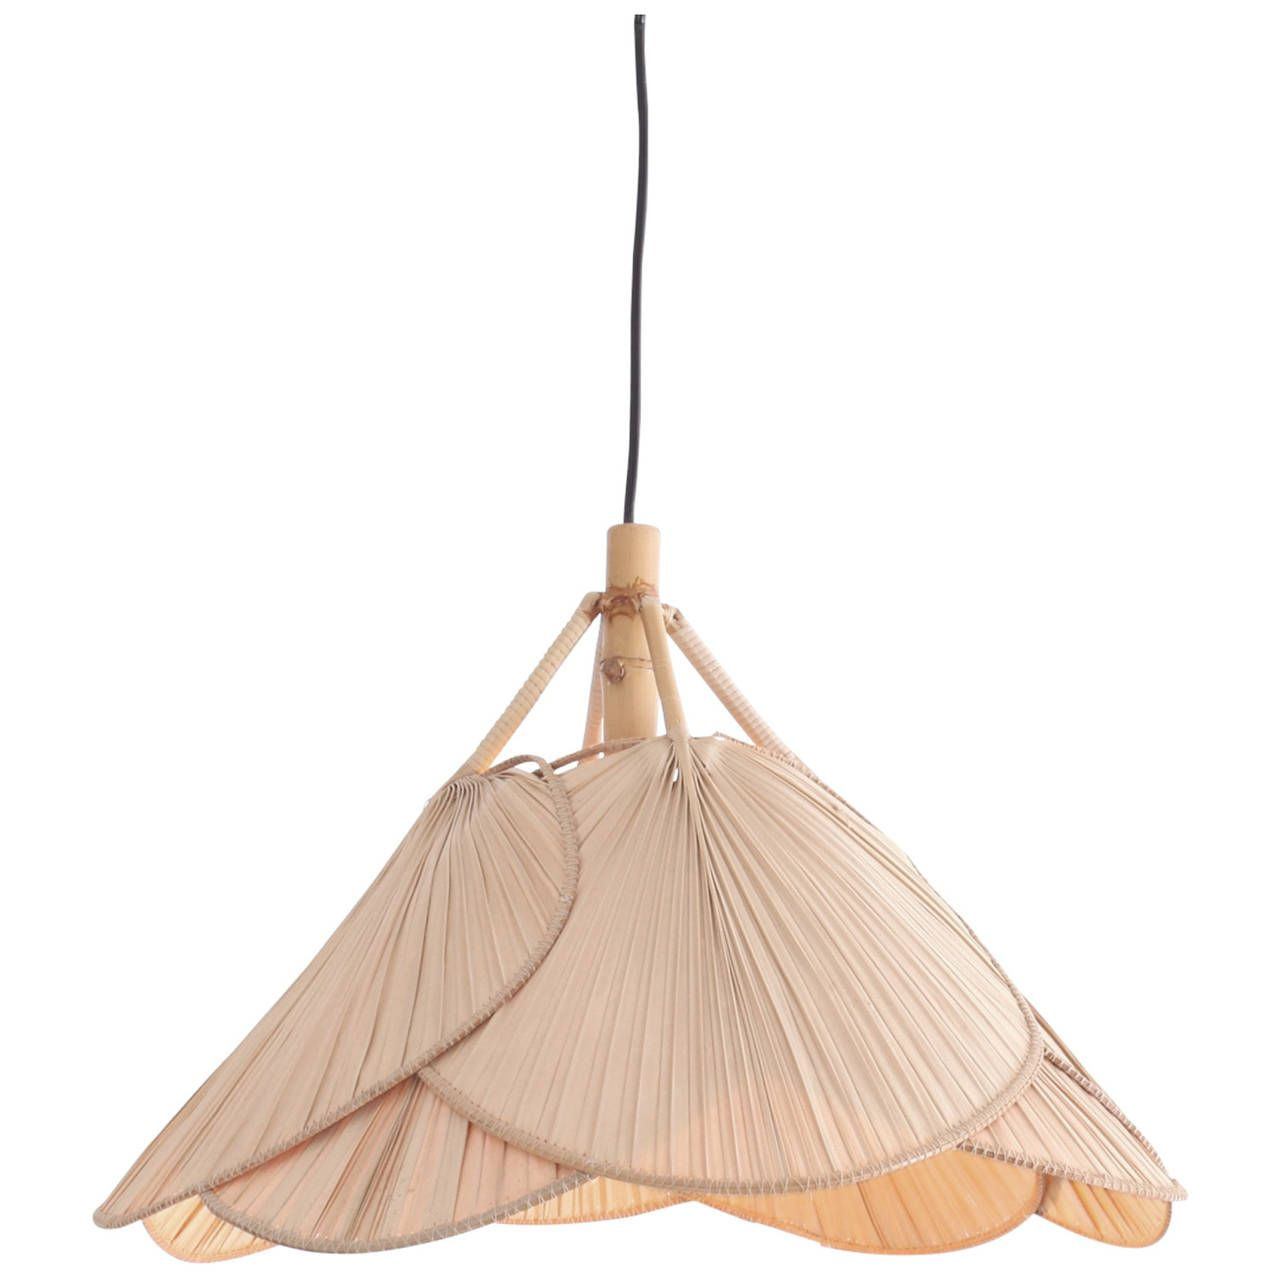 Ingo Maurer Uchiwa Pendant Lamp | From a unique collection